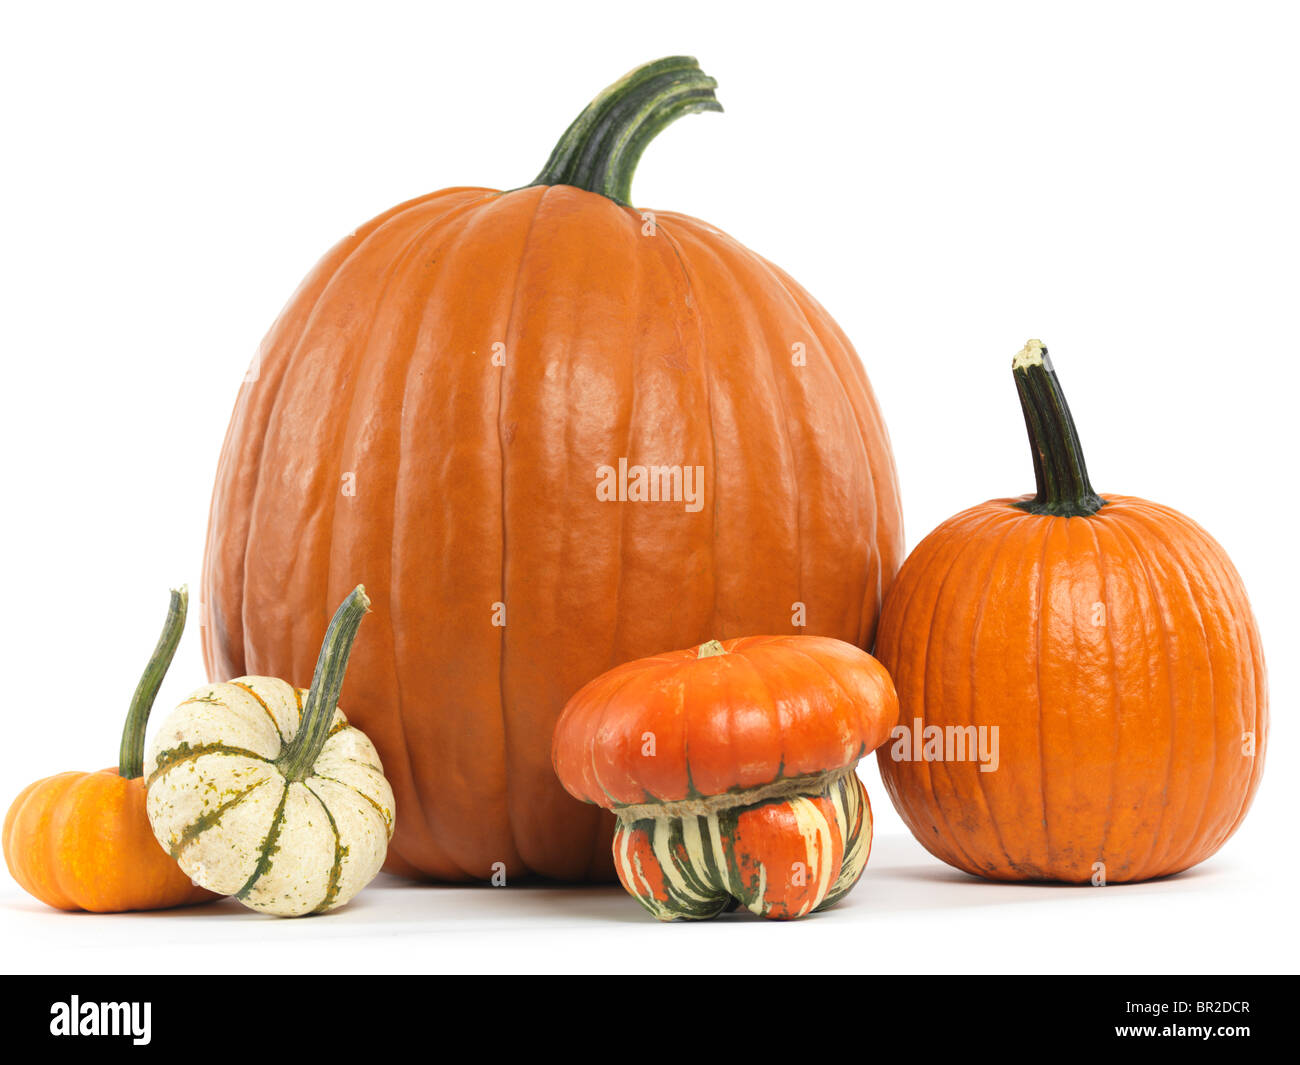 Pumpkins and gourds still life isolated on white background - Stock Image